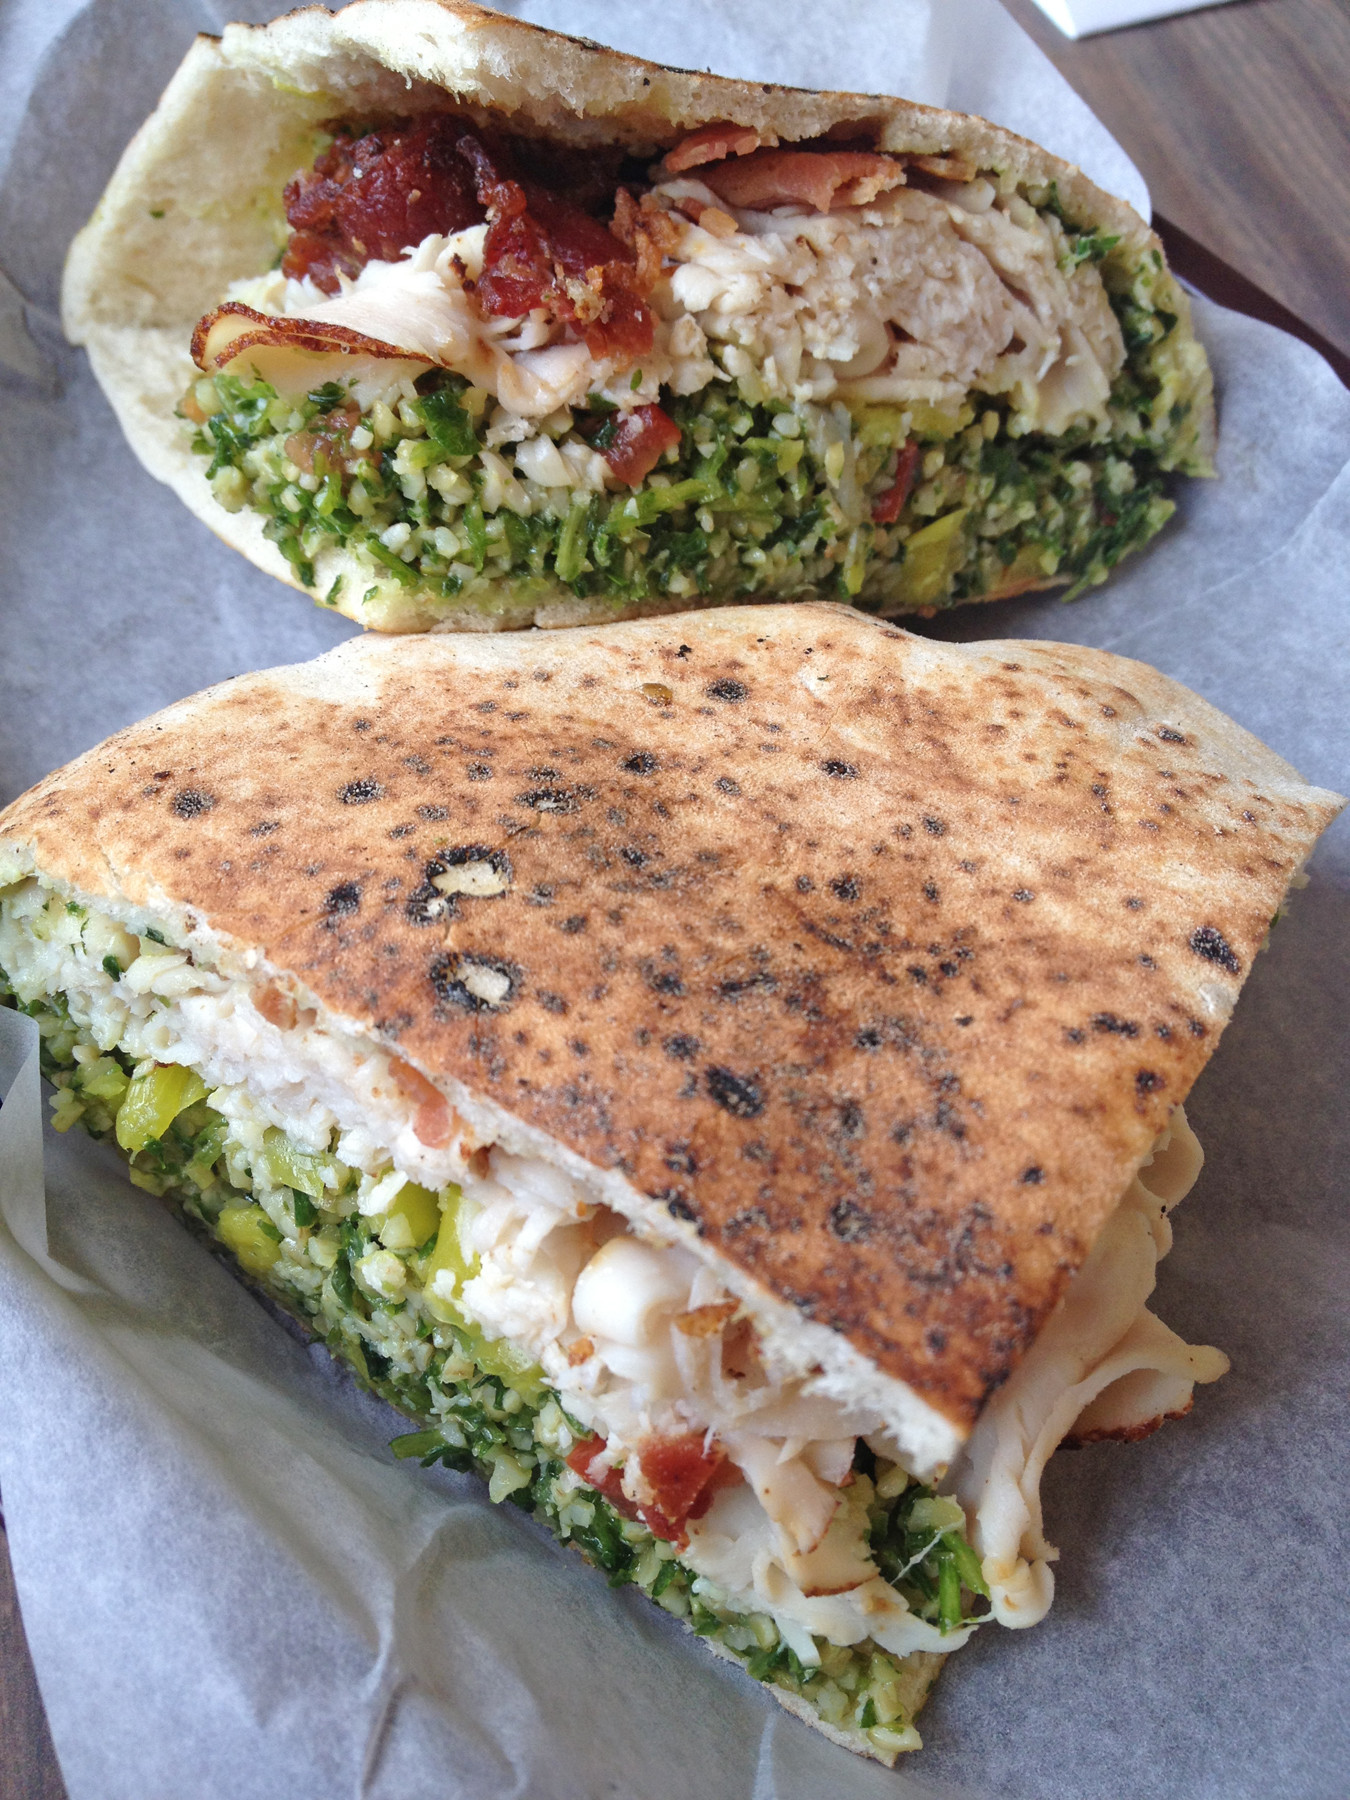 The Late Bloomer at Whiteway Delicatessen is a pressed pita stuffed with shaved turkey, provolone, tabouli, avocado spread, banana peppers and crispy bacon.